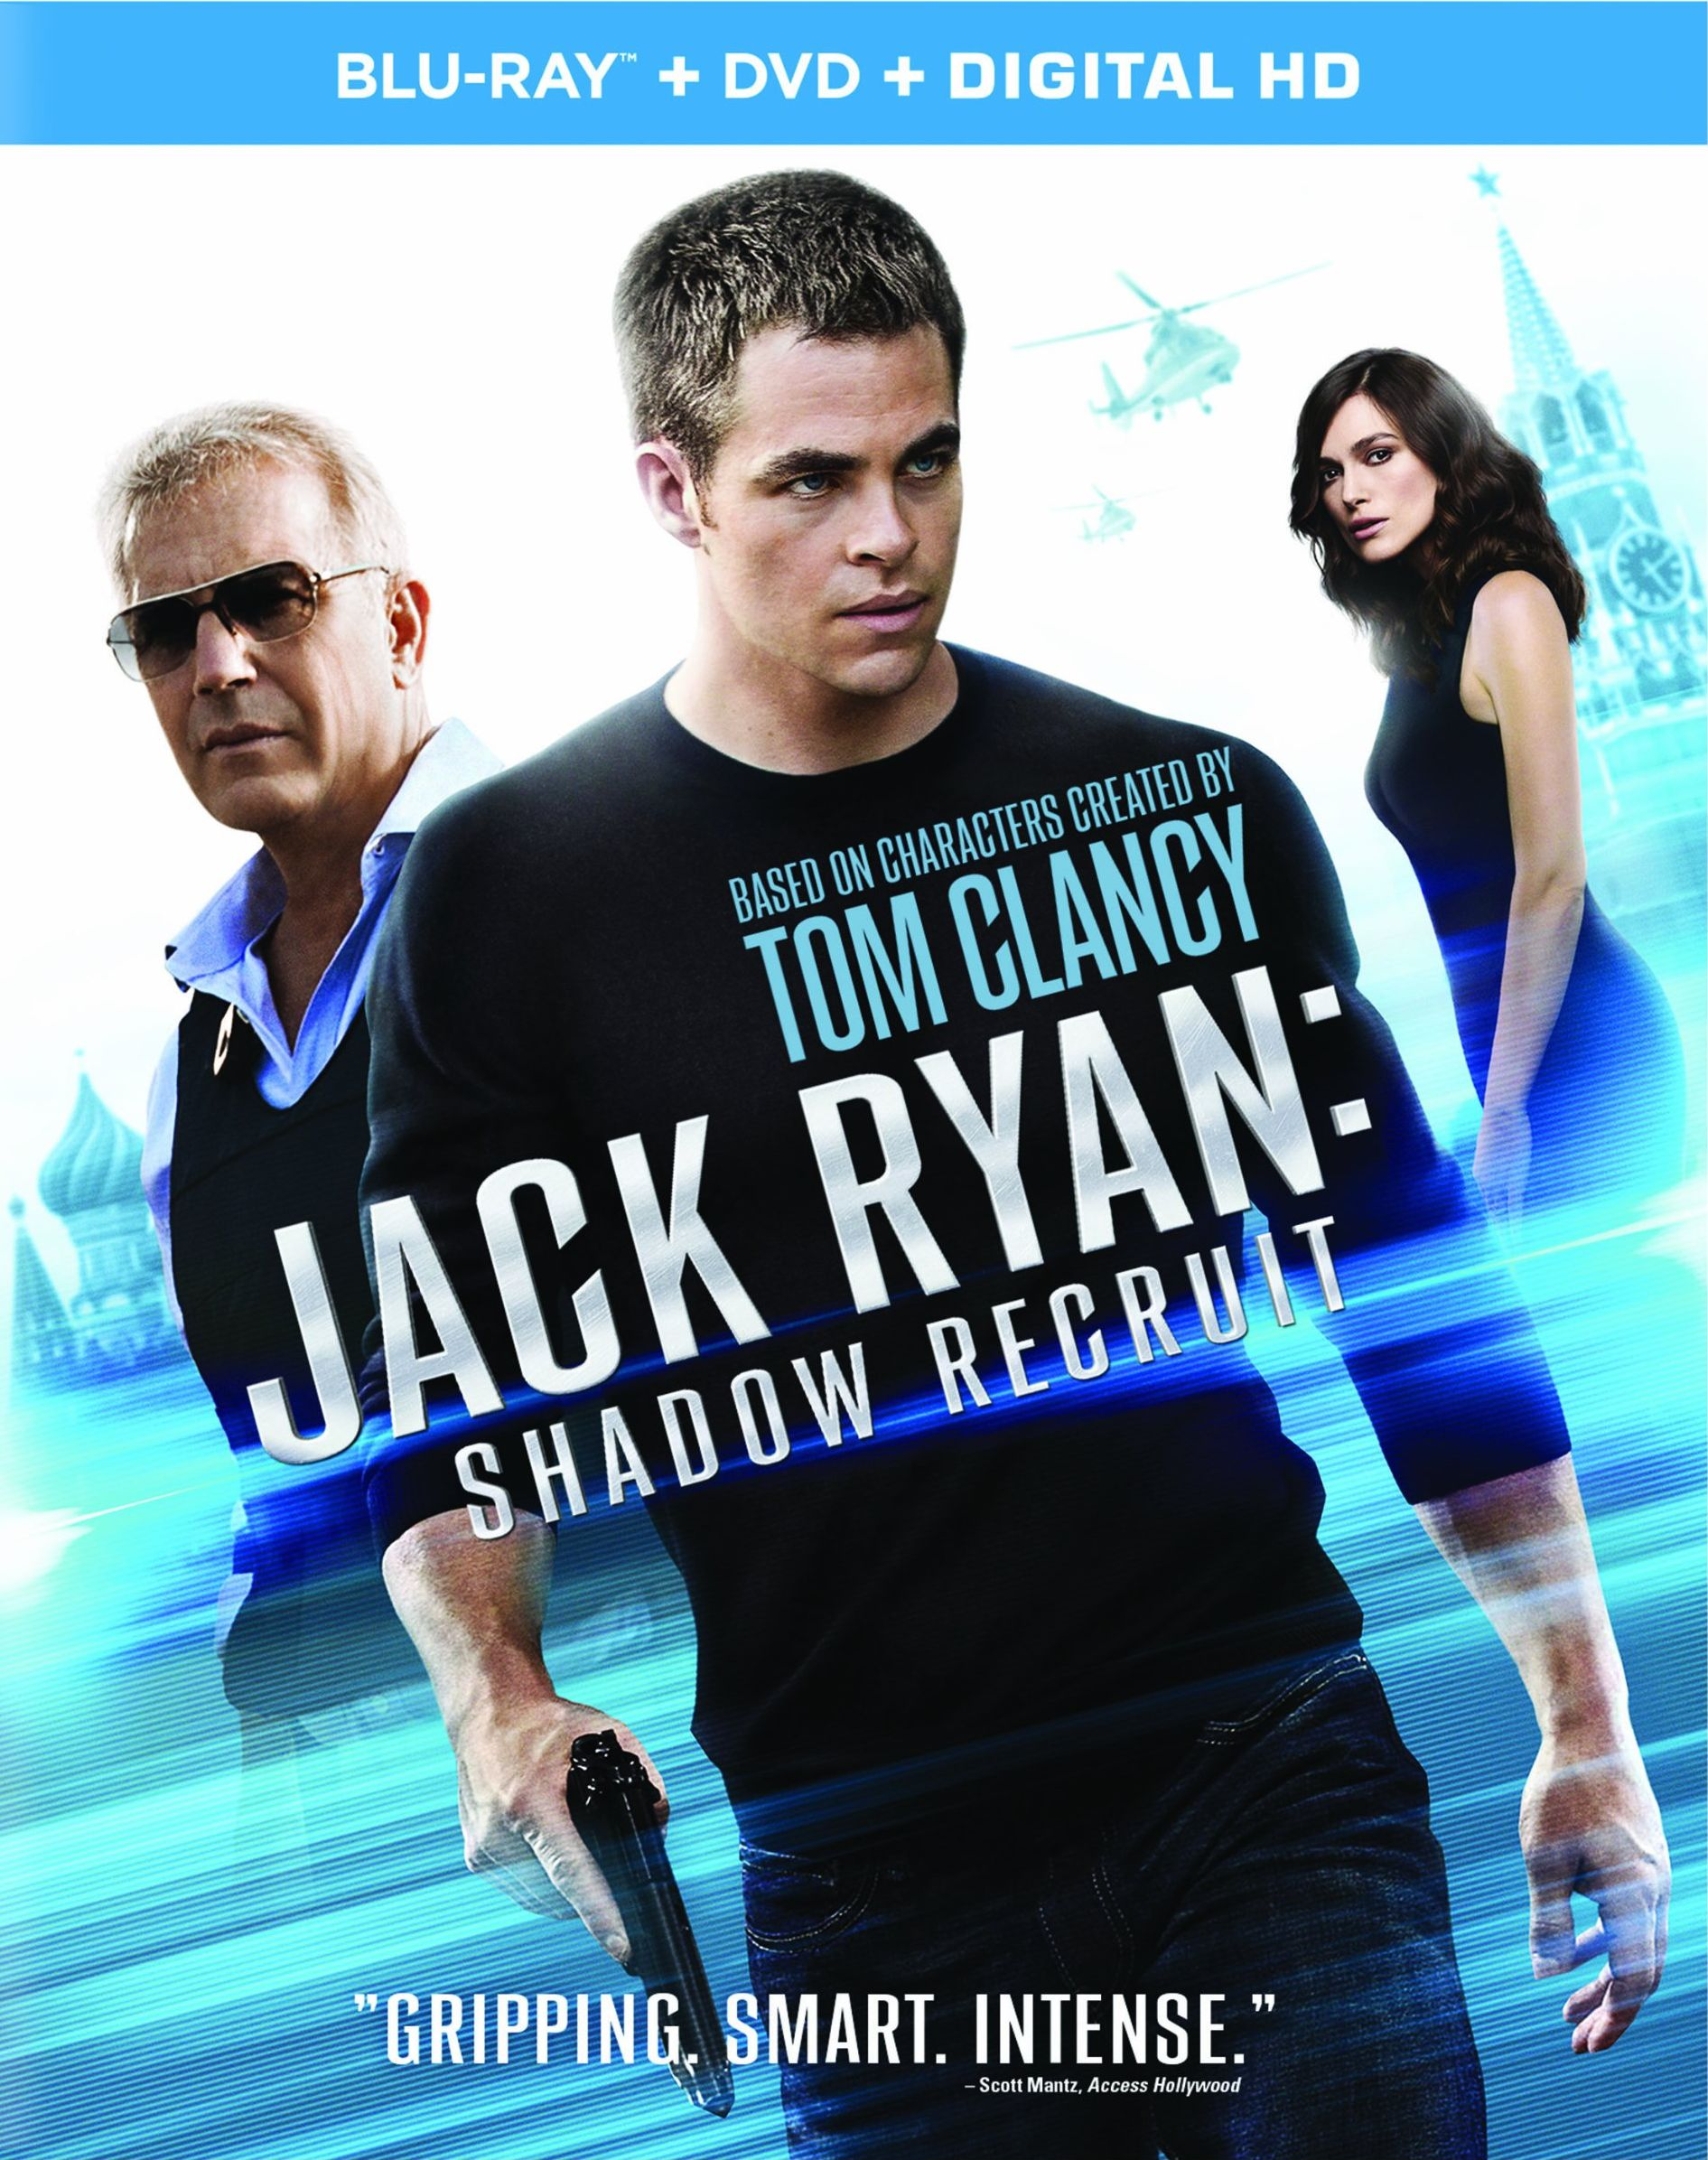 jack-ryan-shadow-recruit-blu-ray-cover-69.jpg